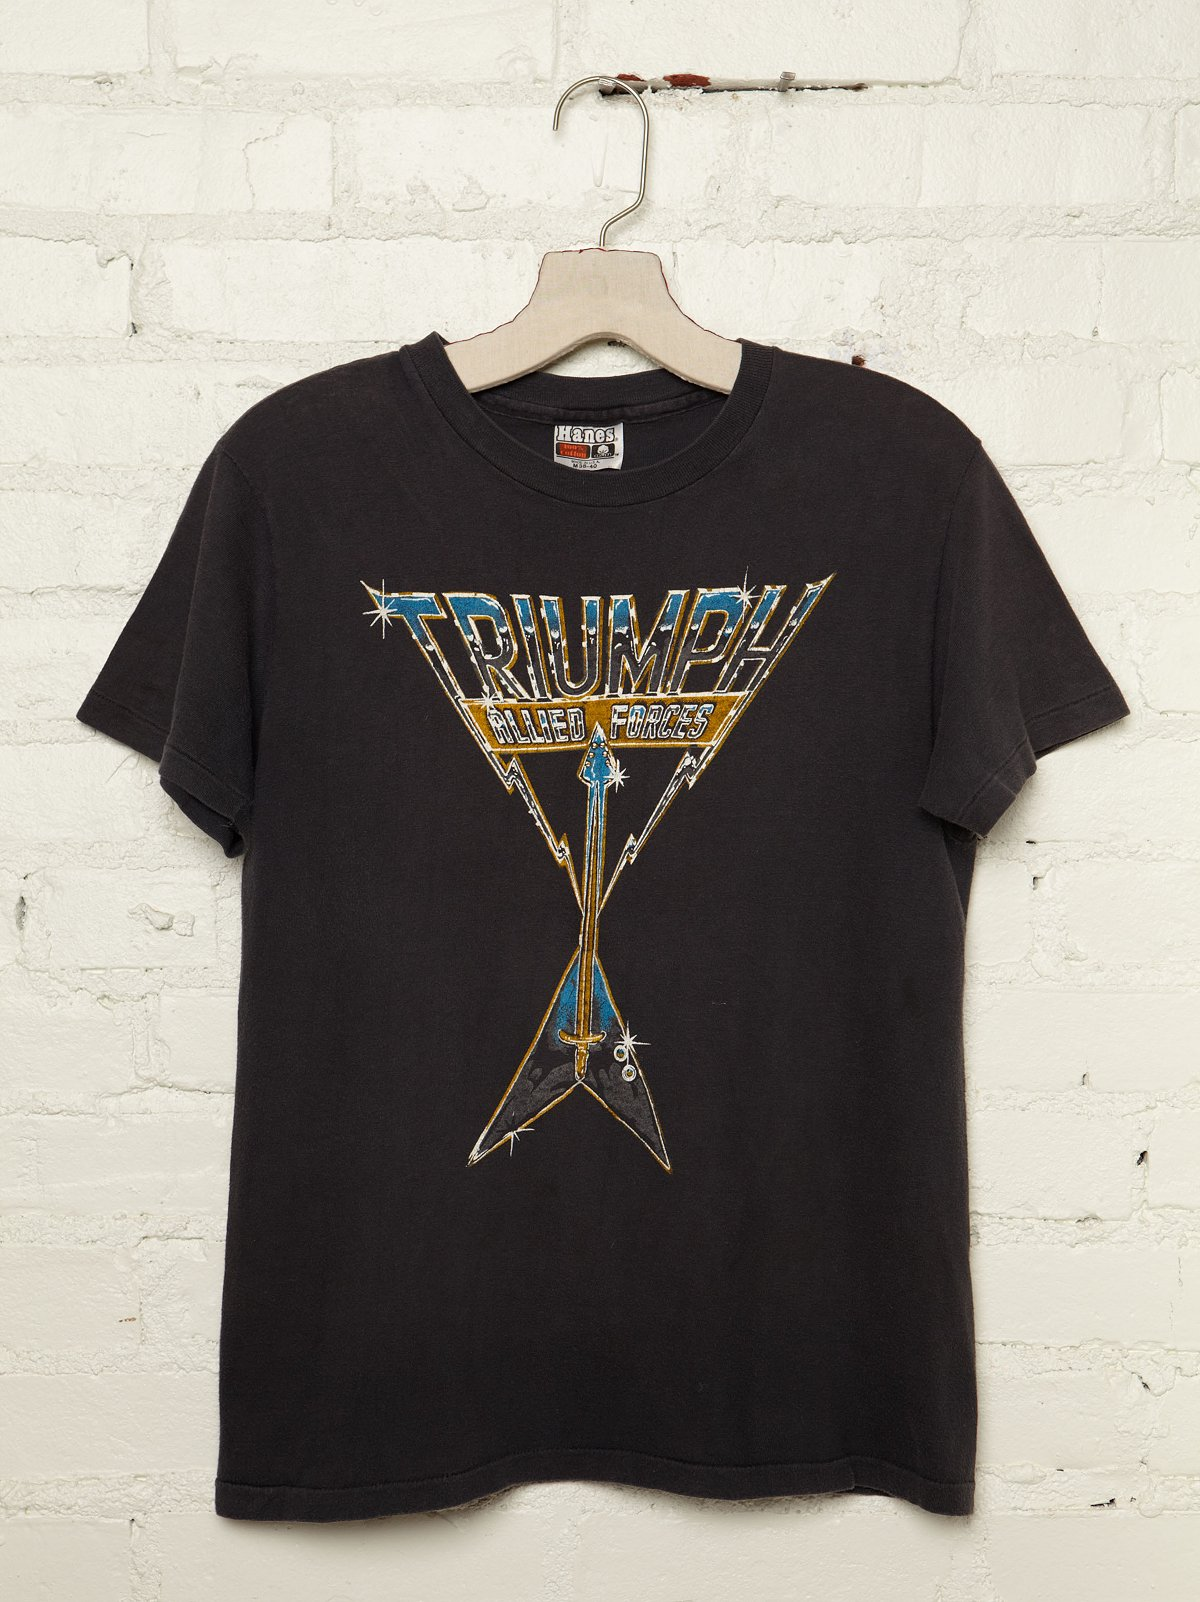 Vintage Triumph Allied Forces Graphic Tee